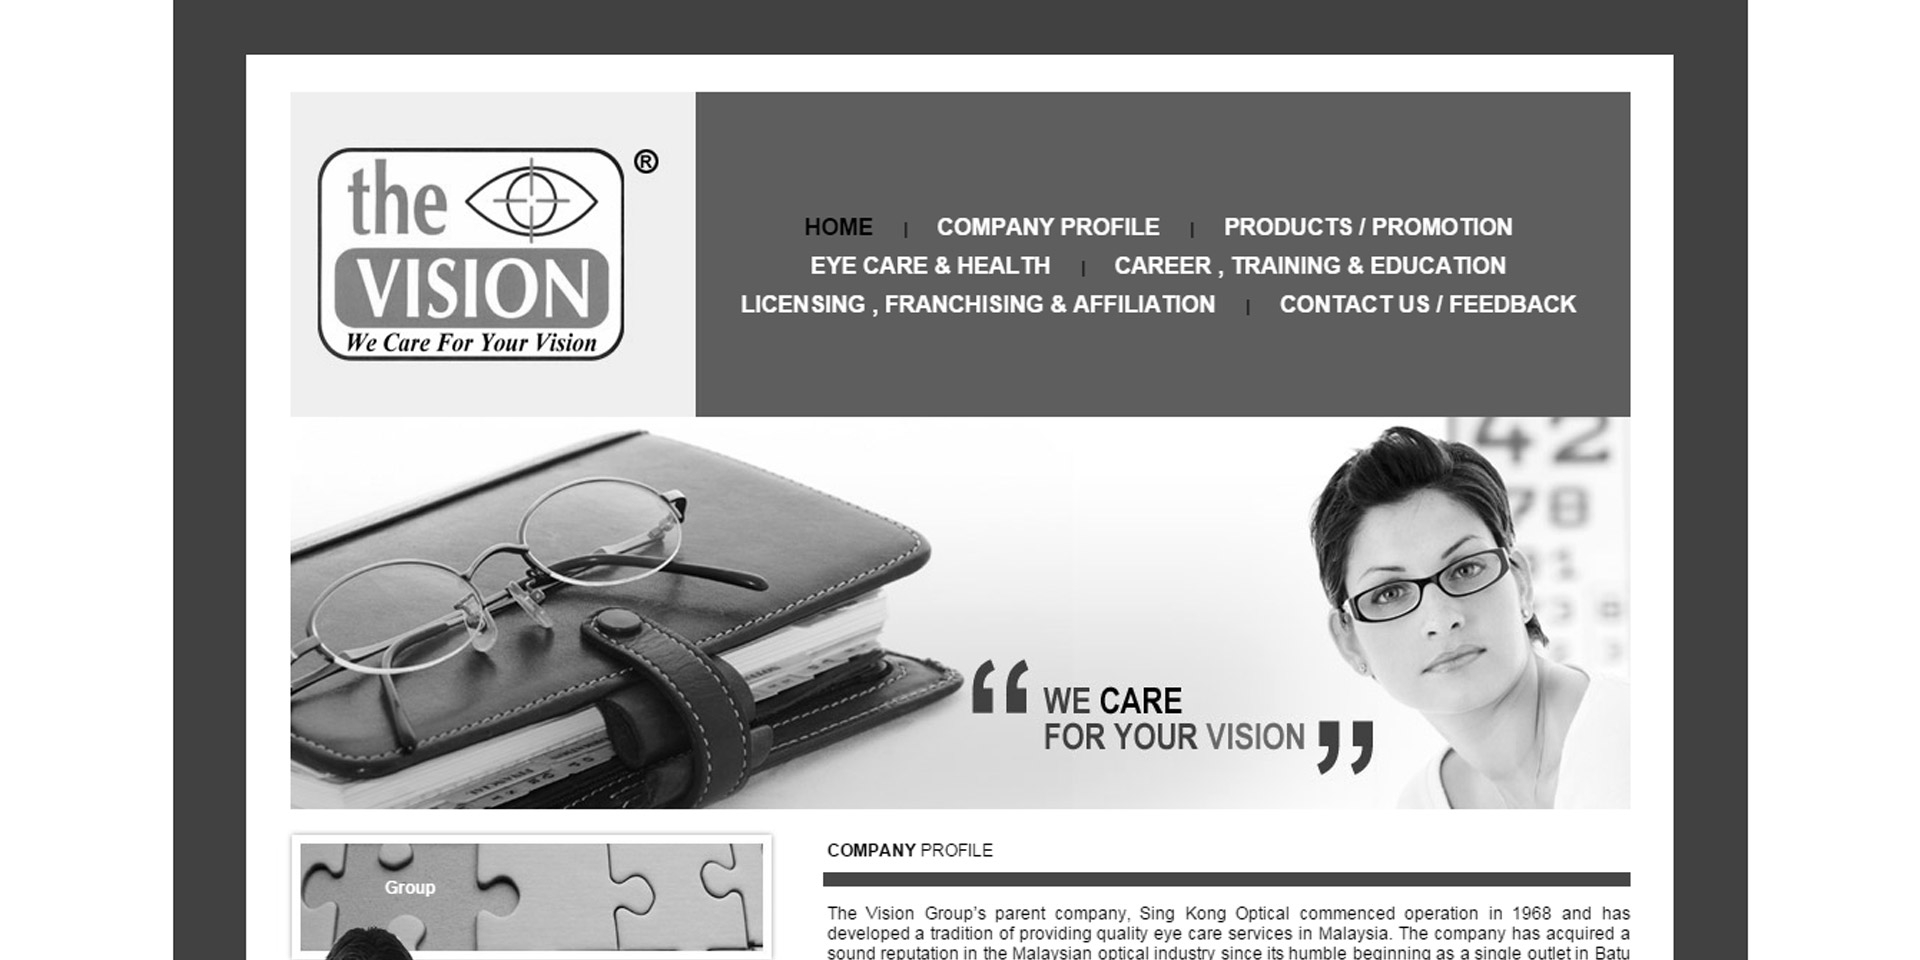 The Vision Group